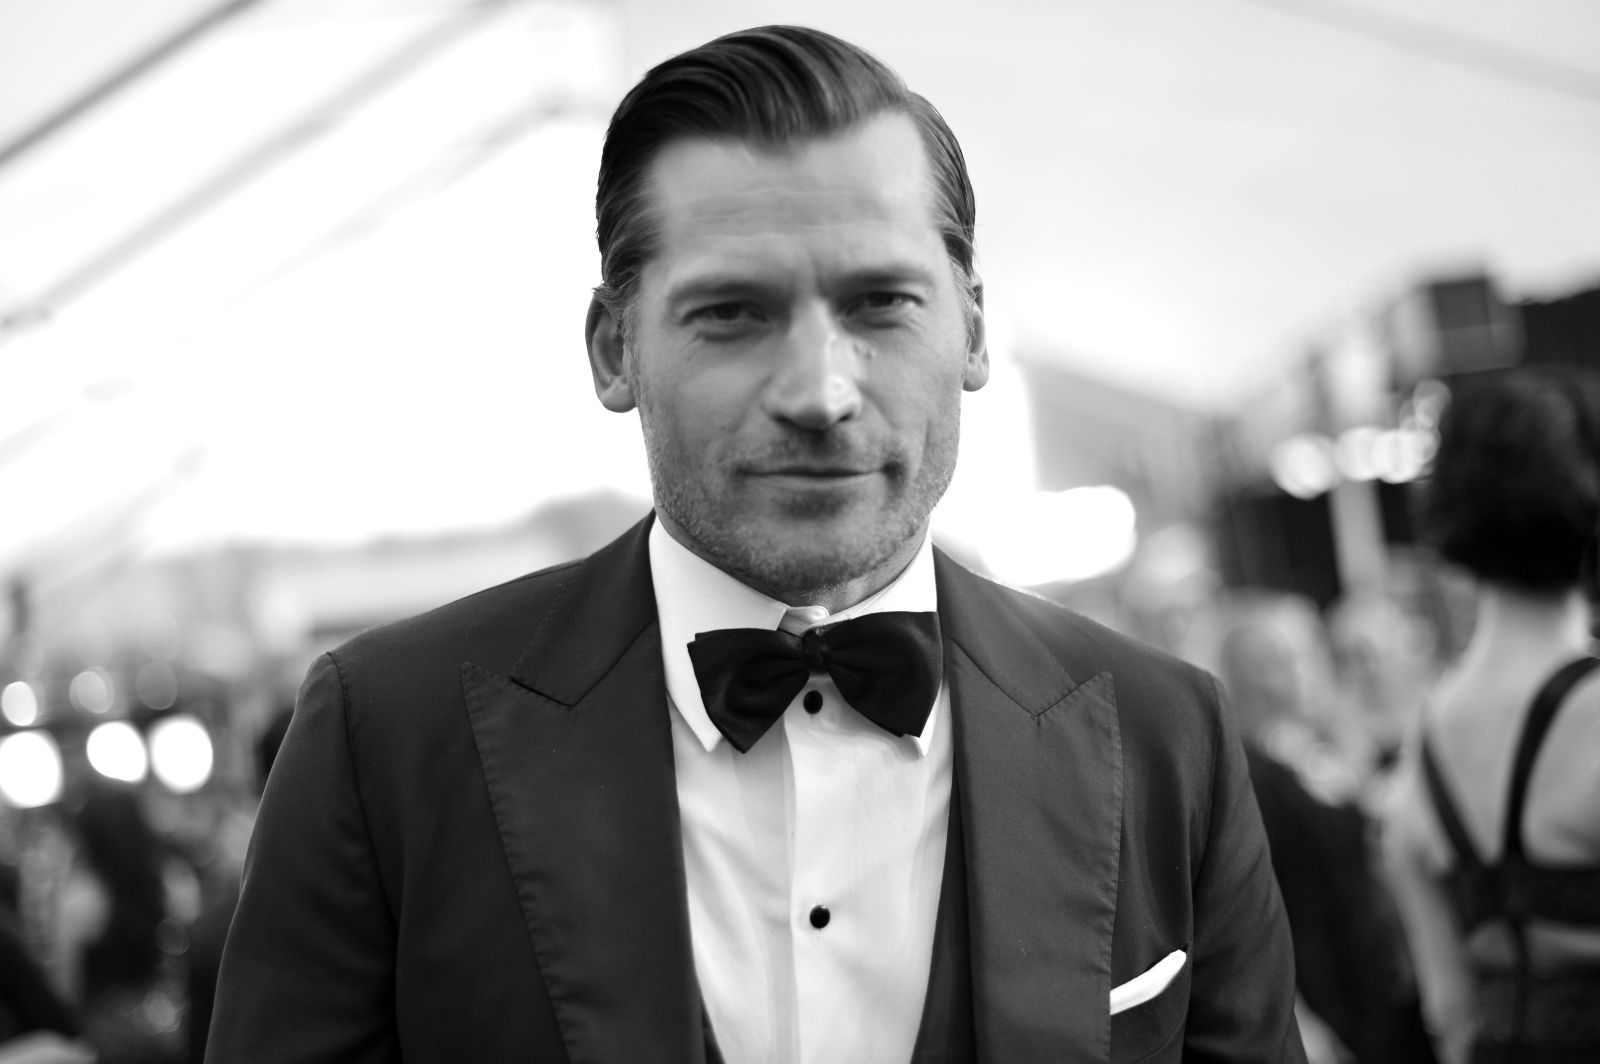 man in suit esquire black and white